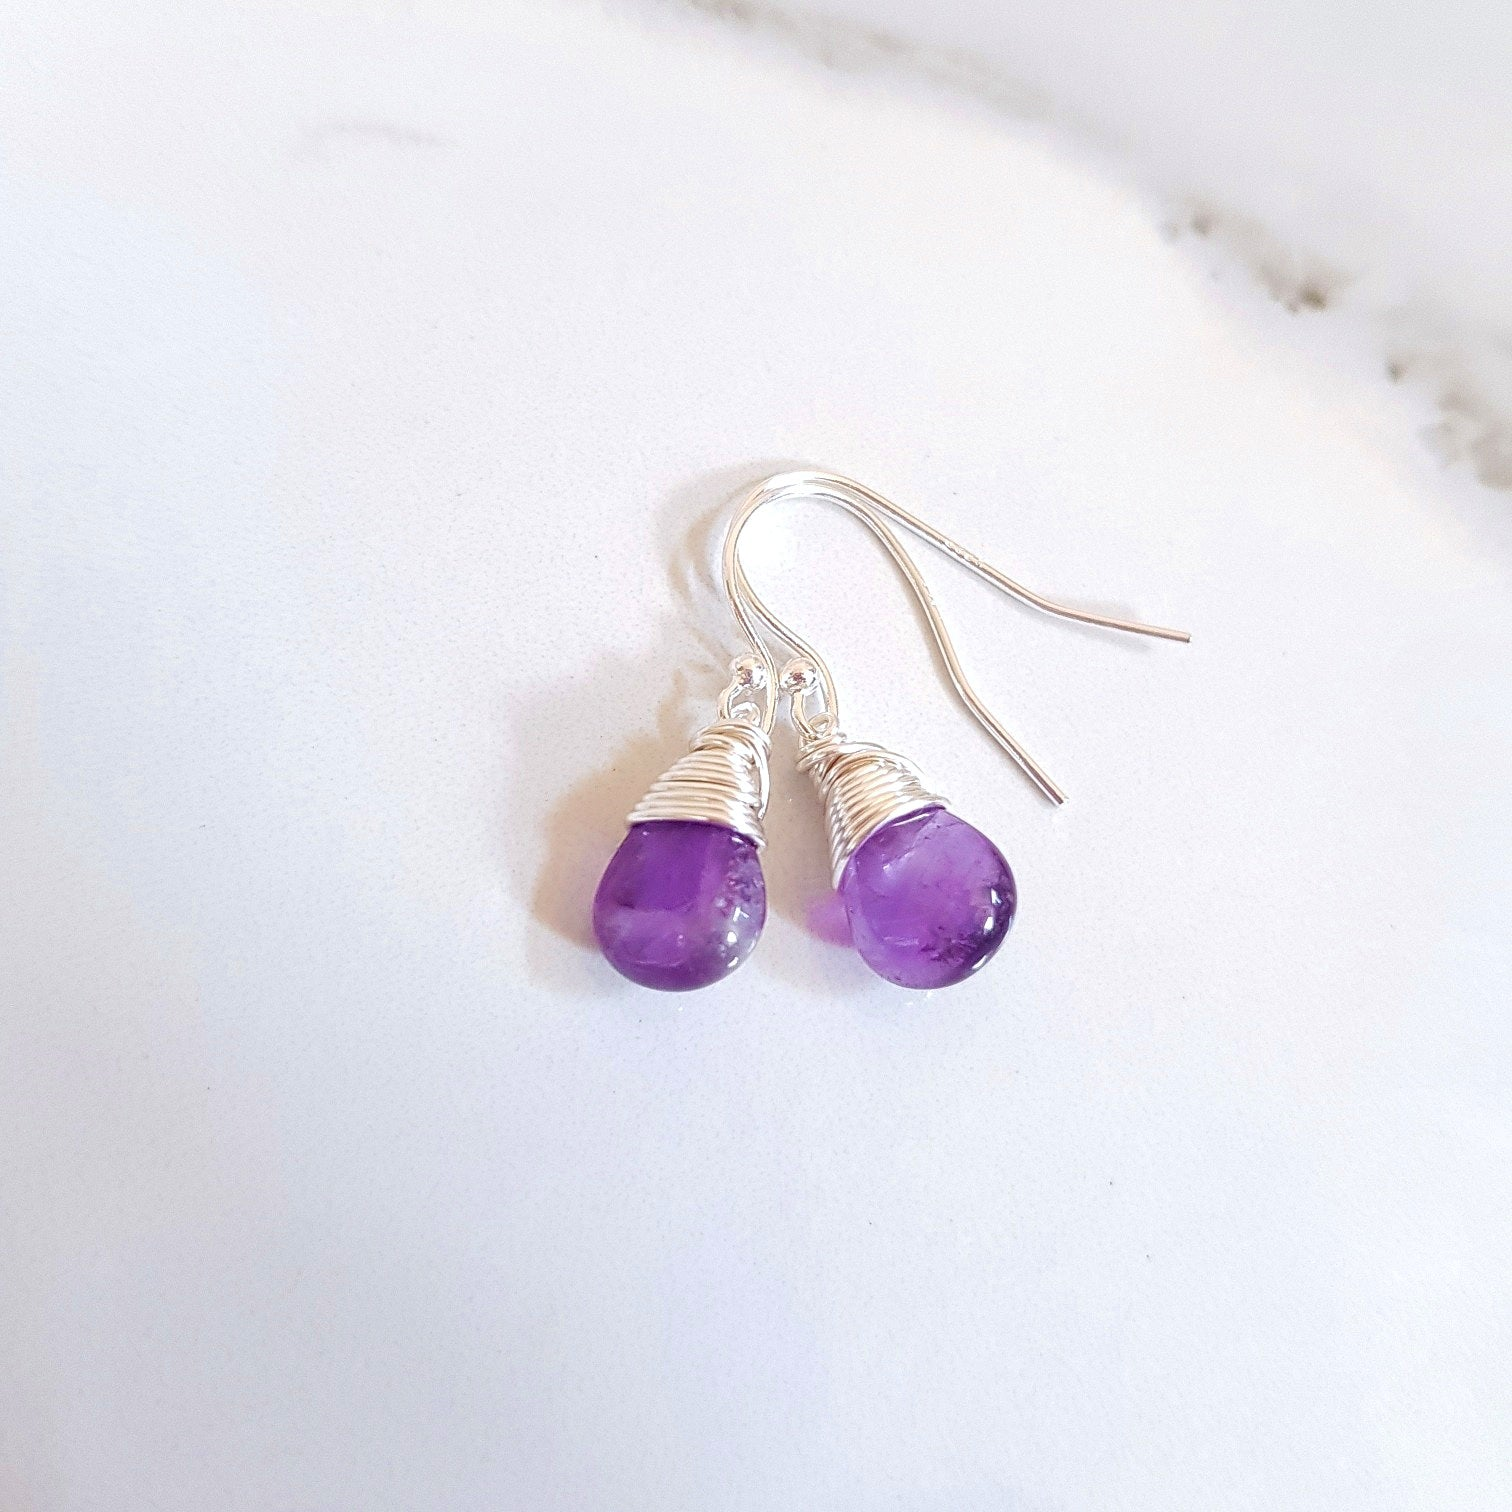 Spirit Earrings - Amethyst